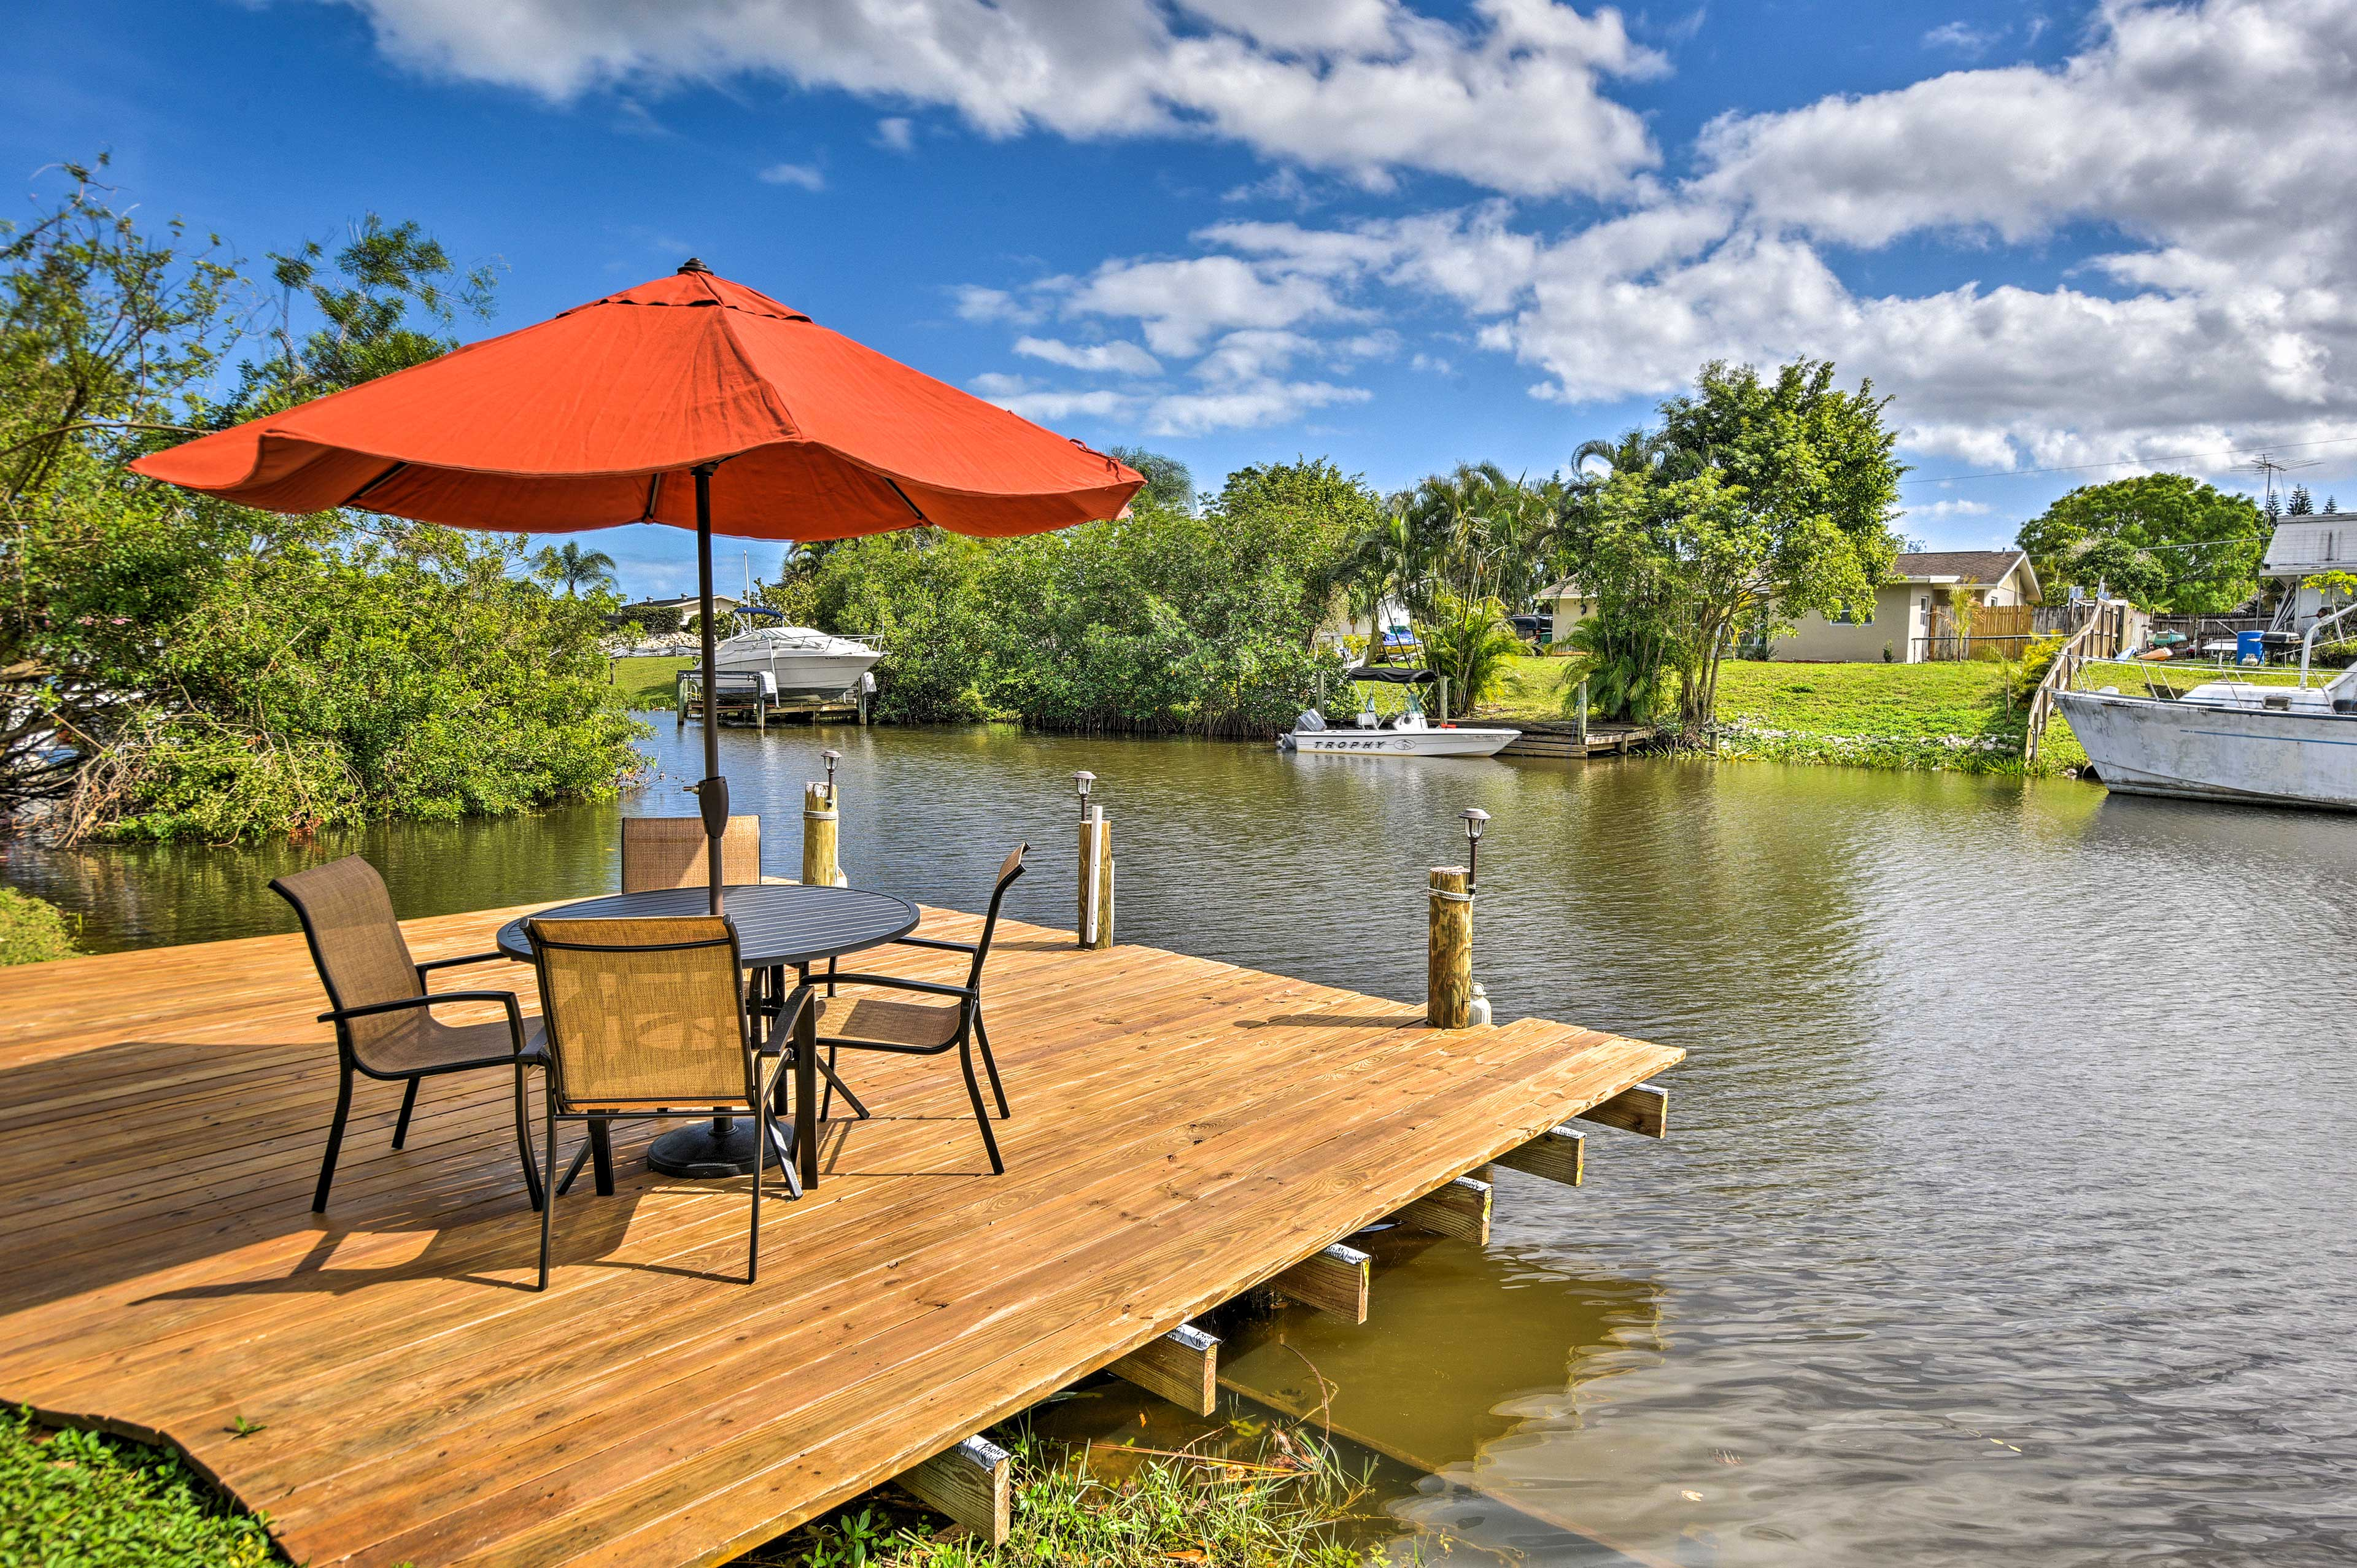 Bring your loved ones for an unforgettable escape along the St. Lucie River!